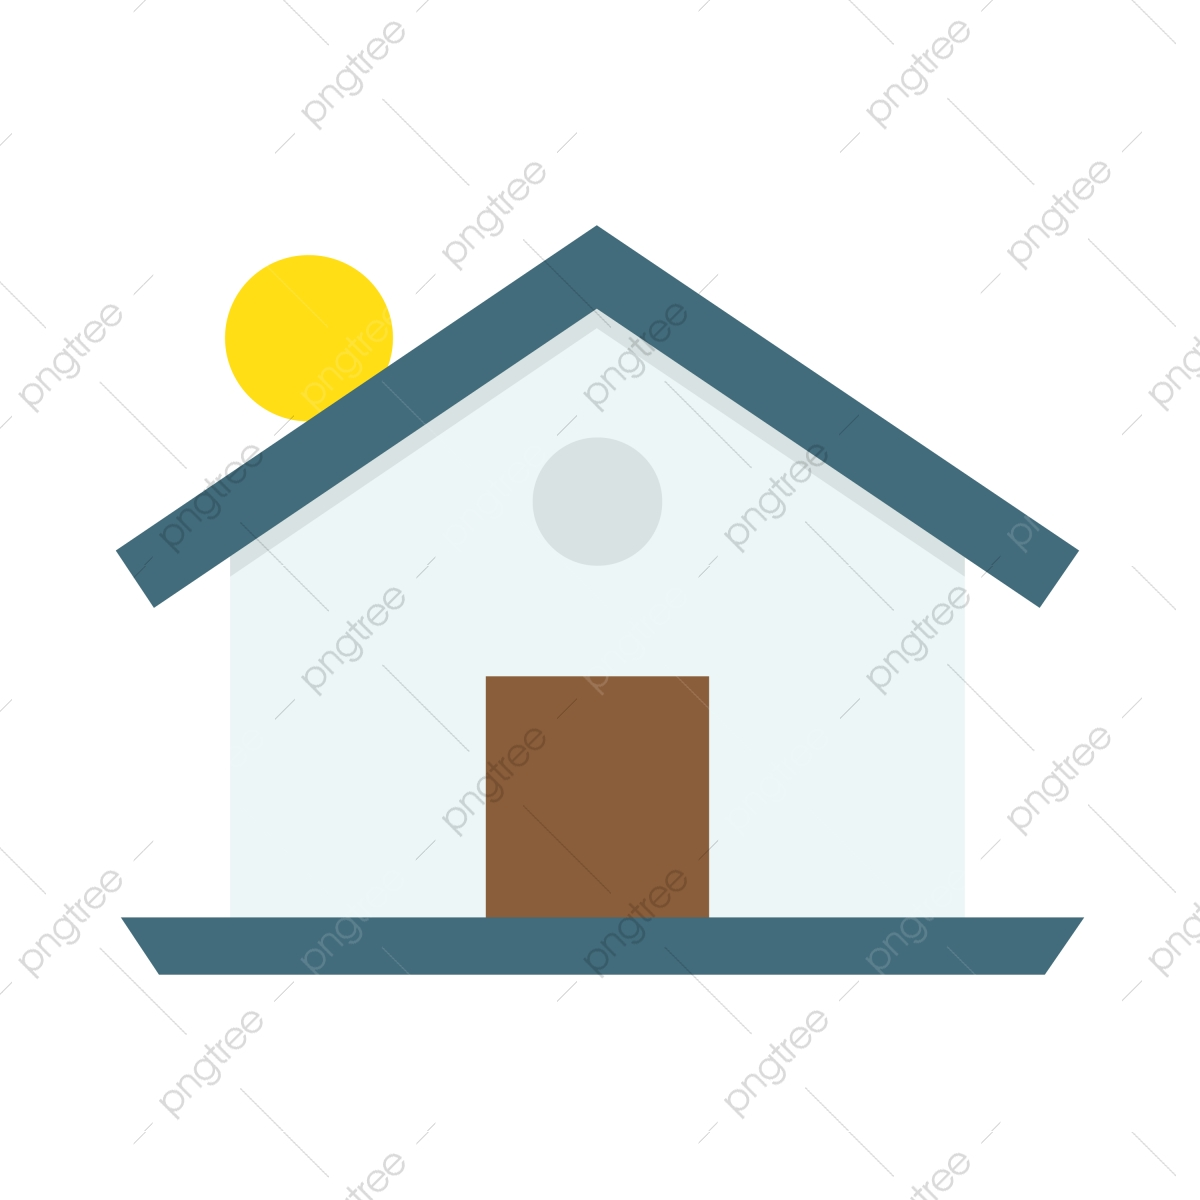 home vector icon home icons home iconse apartment png and vector with transparent background for free download https pngtree com freepng home vector icon 3757868 html